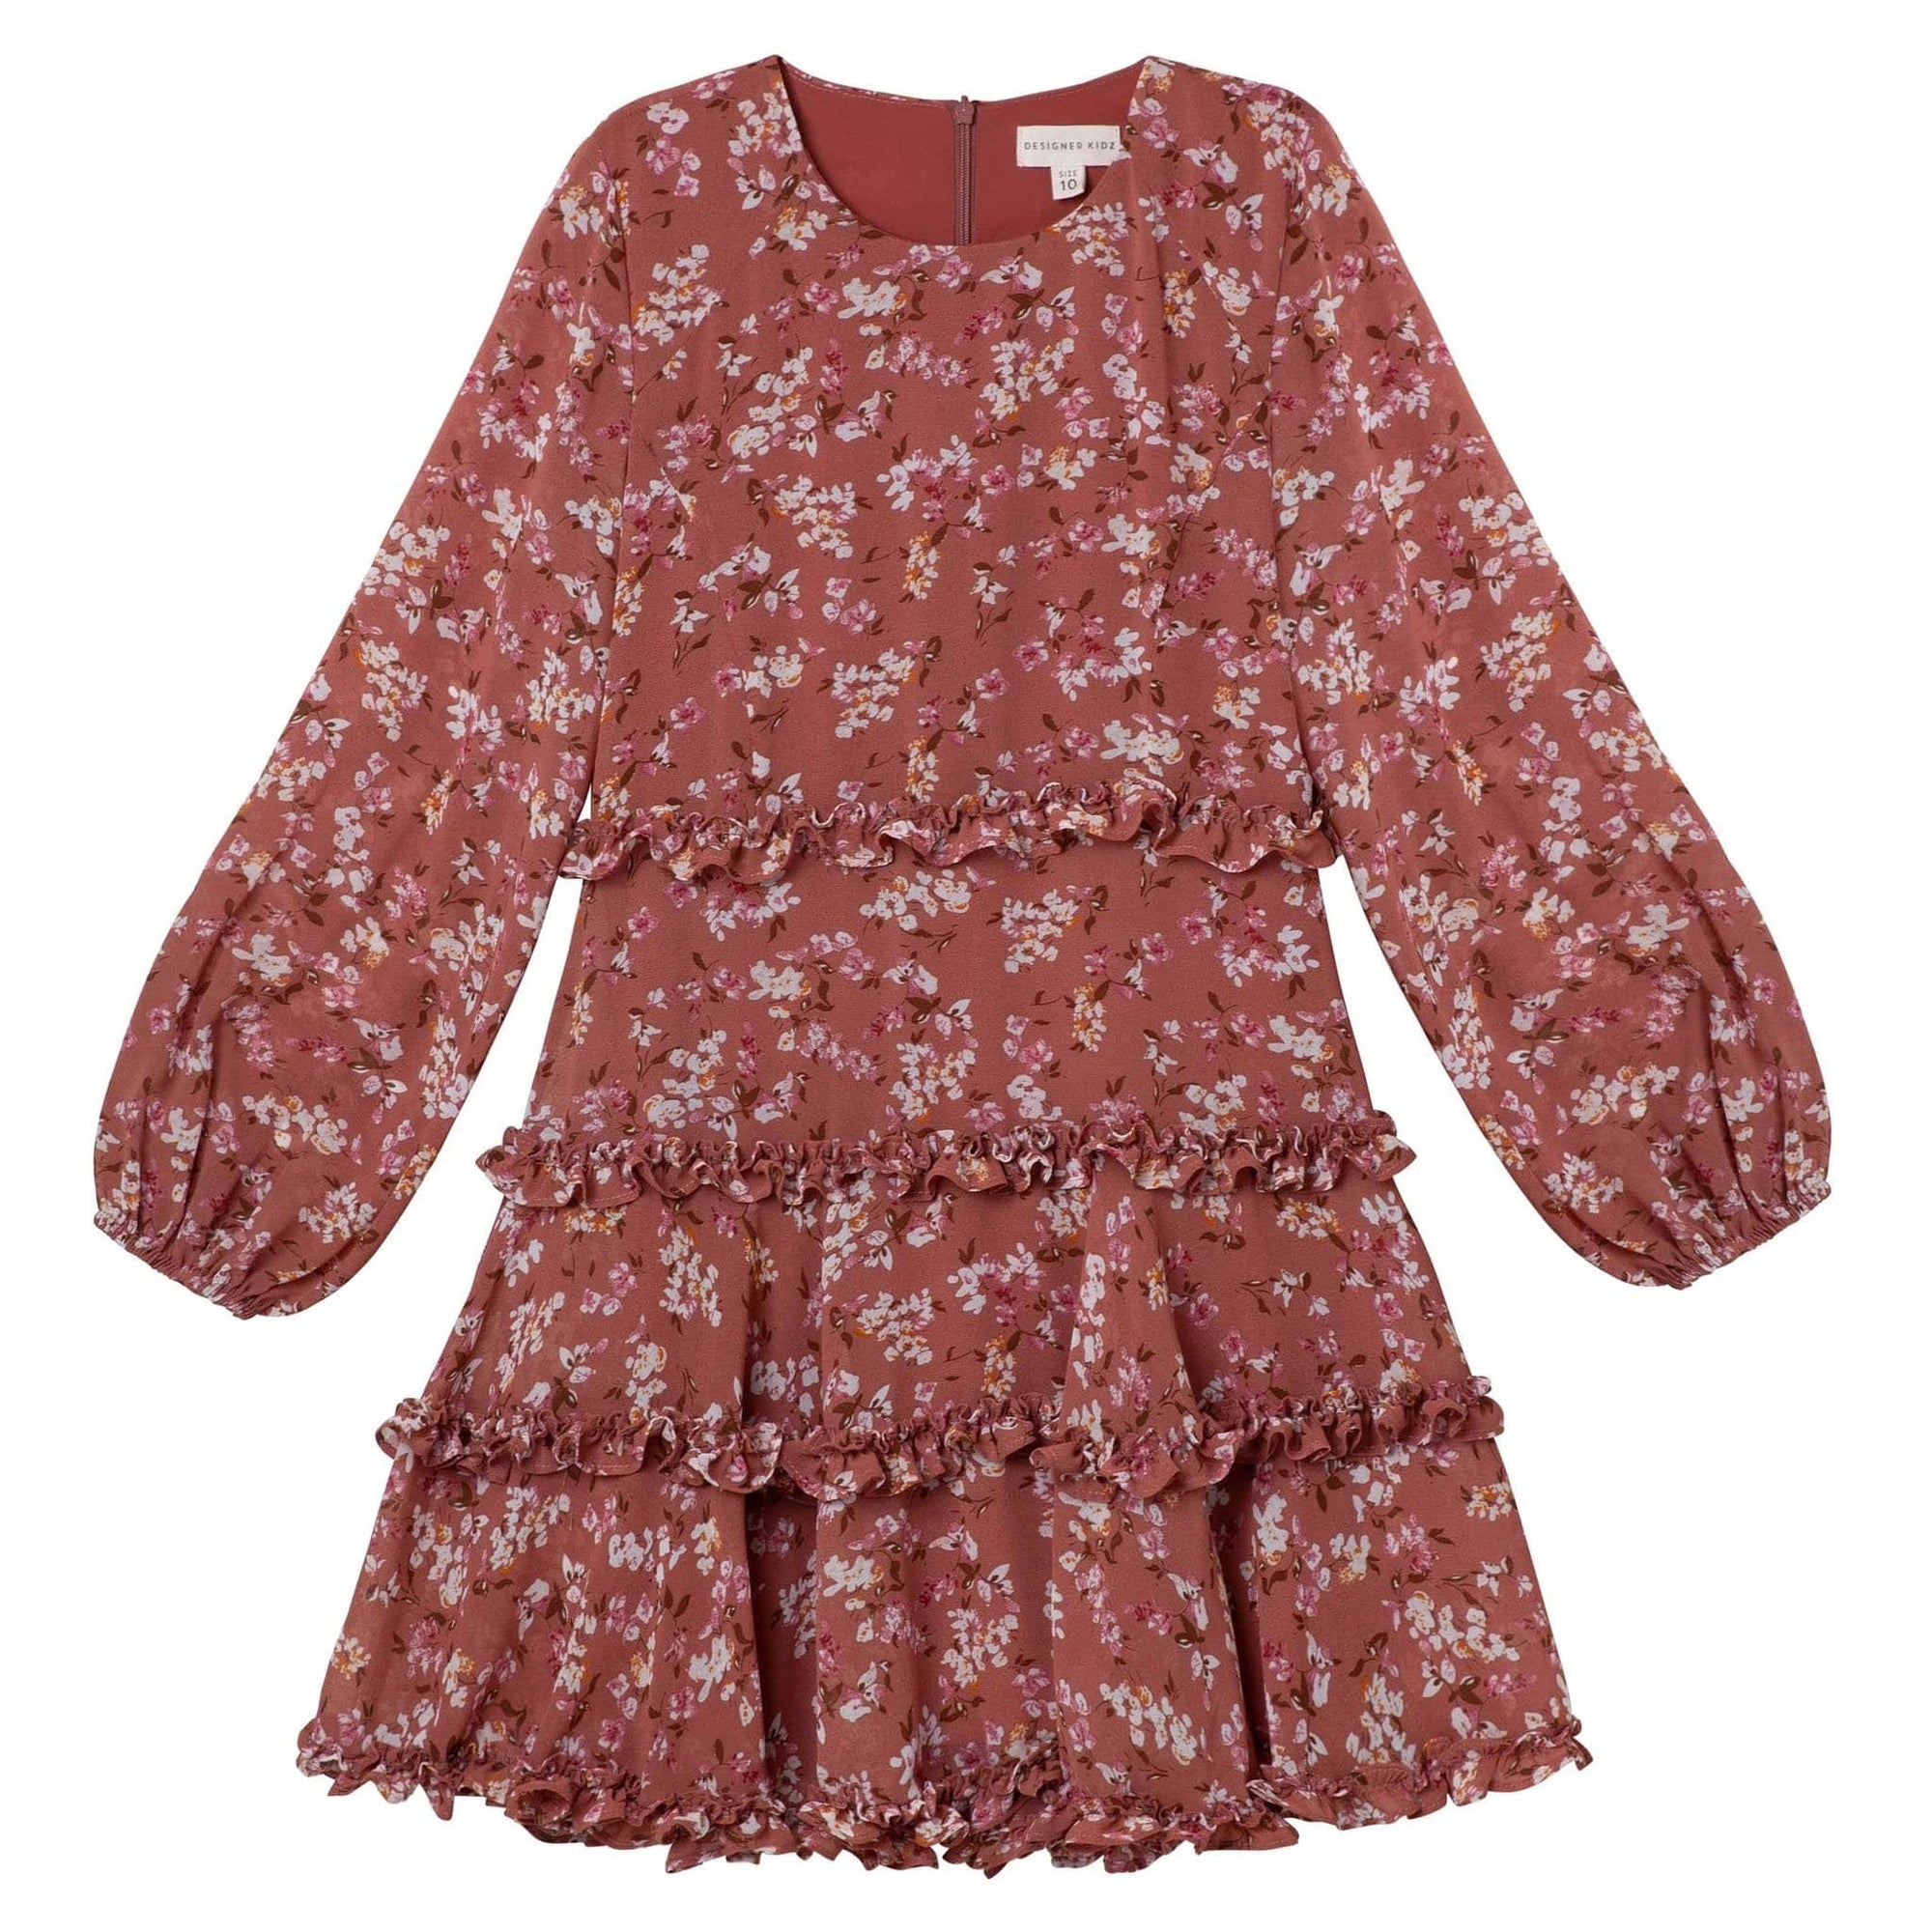 Designer Kidz Indi Floral Dress - Cinnamon